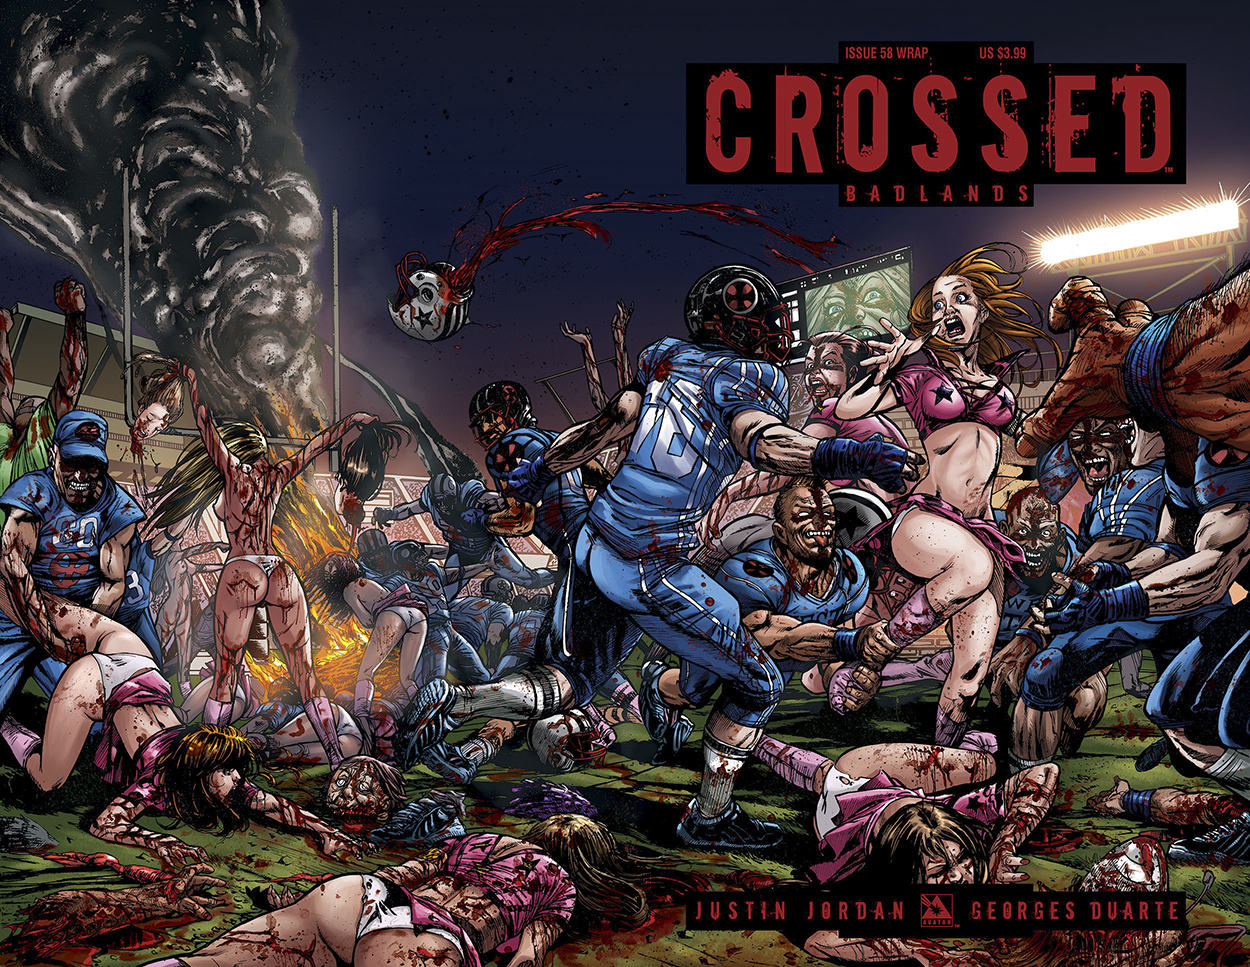 CROSSED BADLANDS #58 WRAP CVR